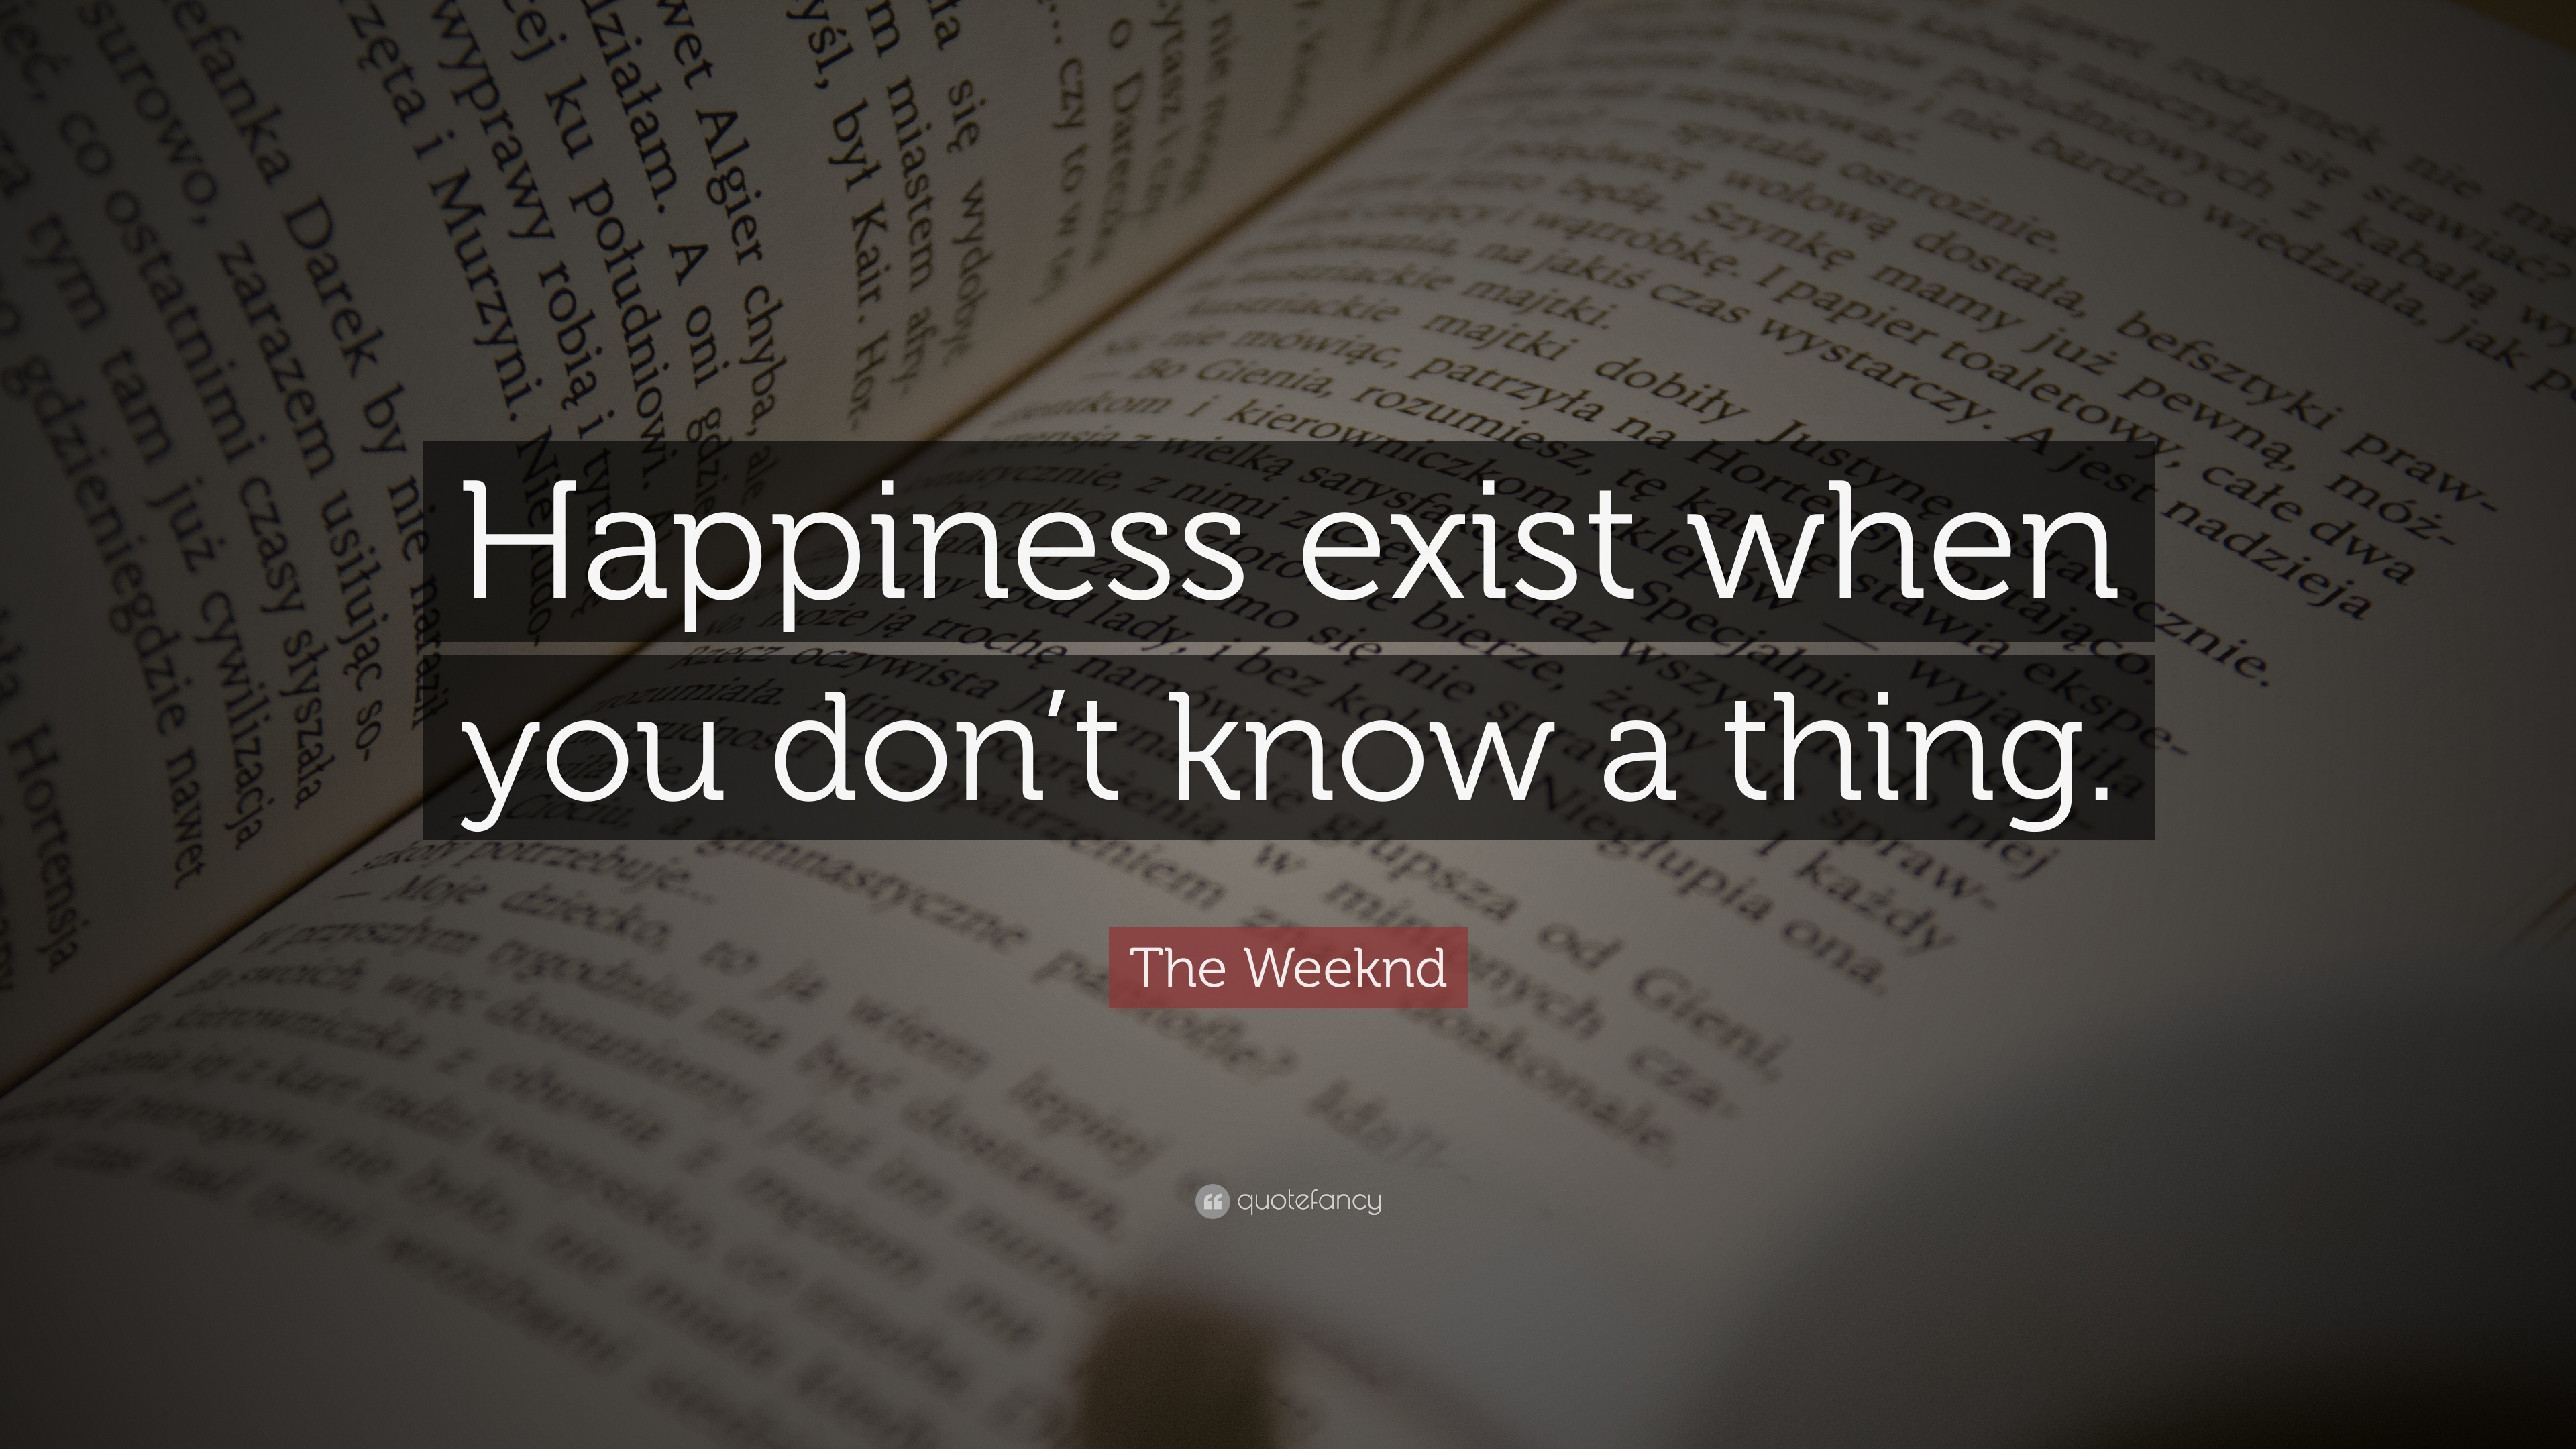 """The Weeknd Quotes The Weeknd Quote: """"Happiness exist when you don't know a thing  The Weeknd Quotes"""